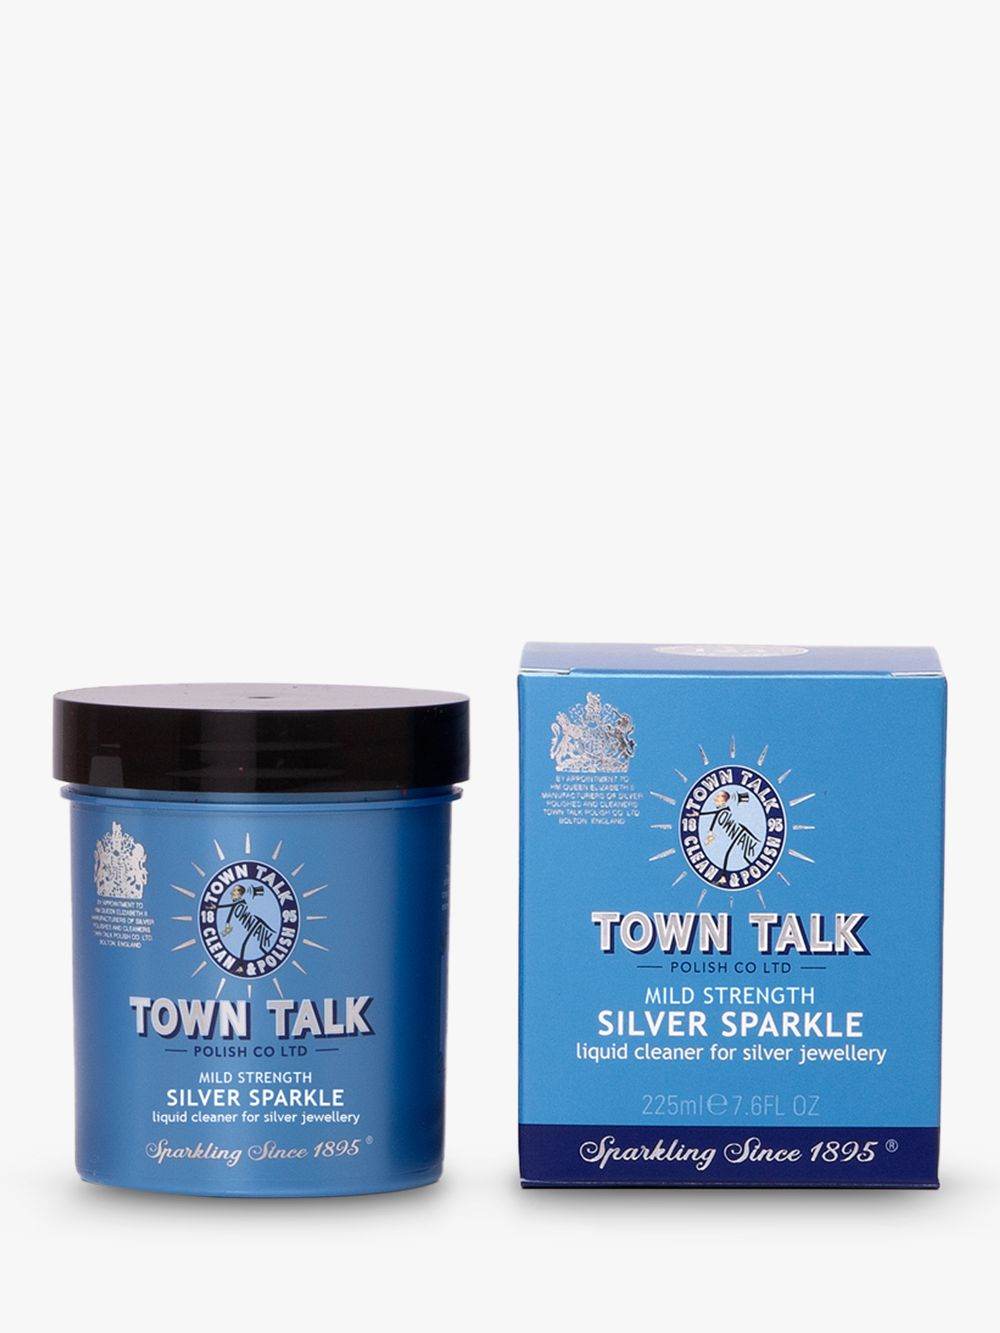 Town Talk Town Talk Silver Sparkle Cleaner, Mild Strength, 225ml